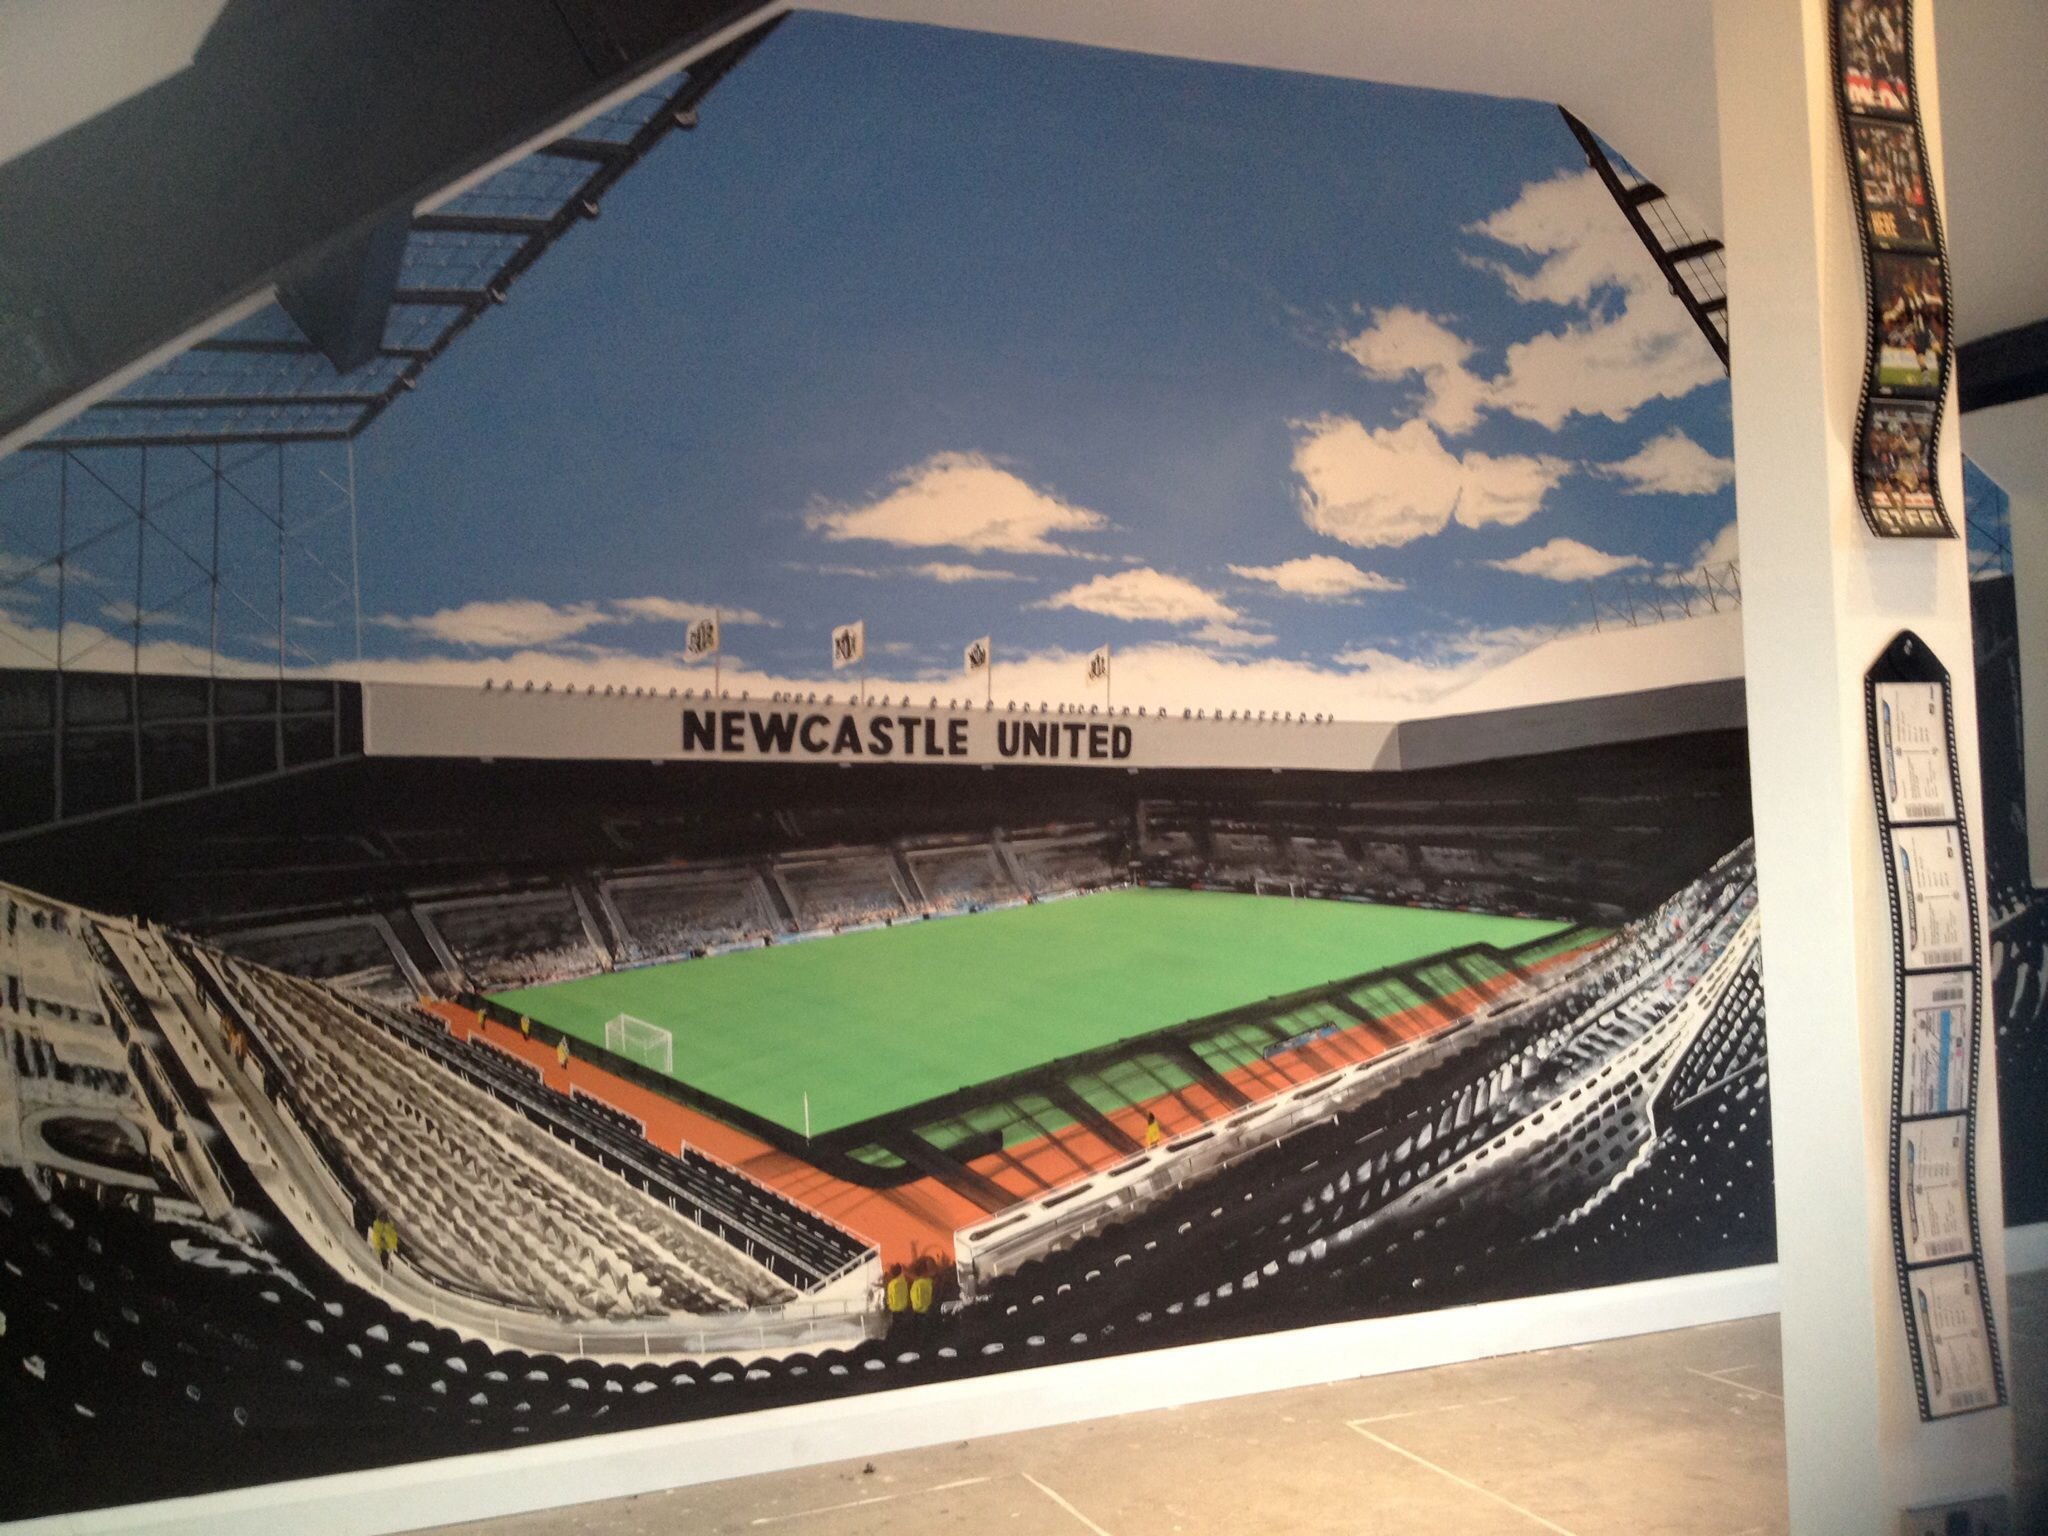 Newcastle unites st james park painted wall mural howay the lads newcastle unites st james park painted wall mural amipublicfo Images